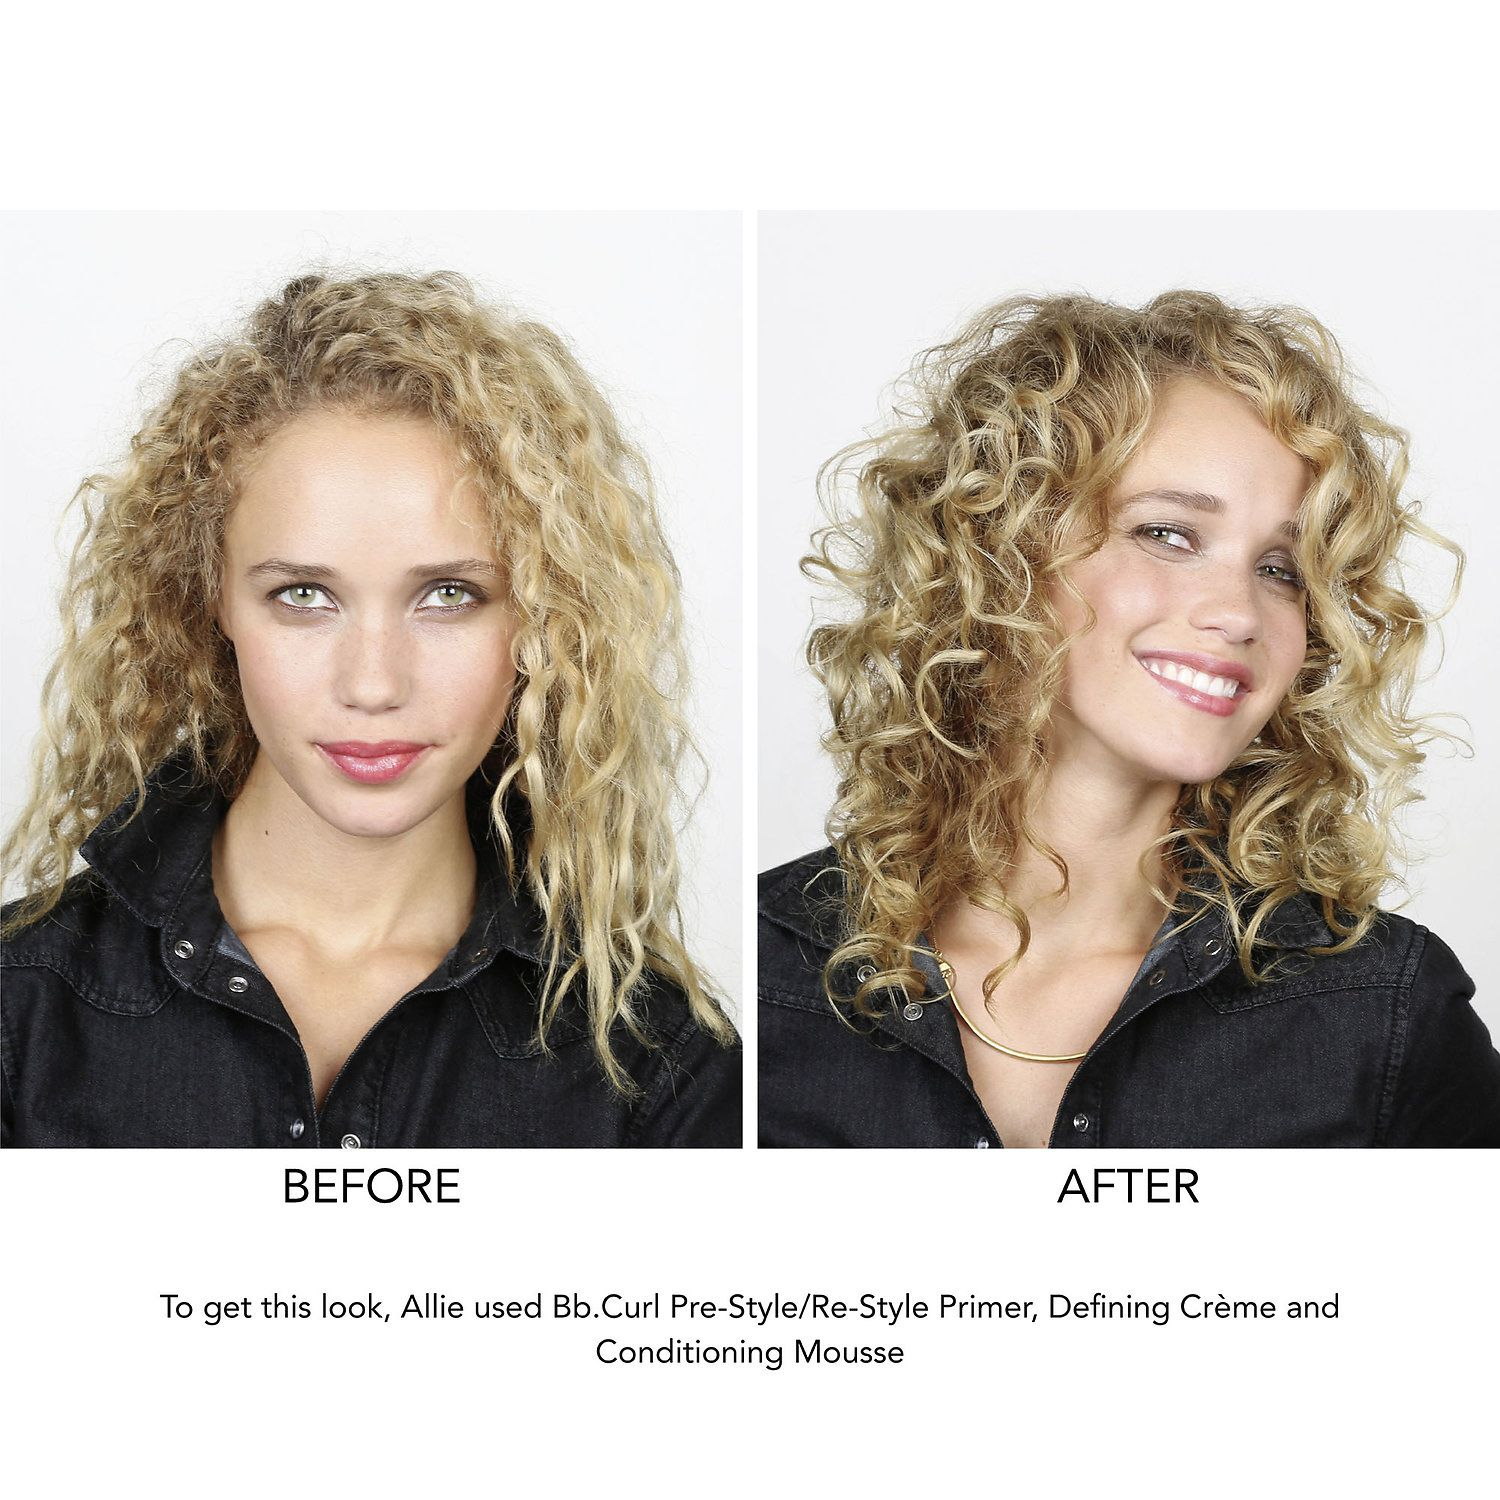 Bumble And Bumble Bb Curl Style Conditioning Mousse Image 2 In 2020 Curly Hair Styles Naturally Curly Hair Styles Hair Styles